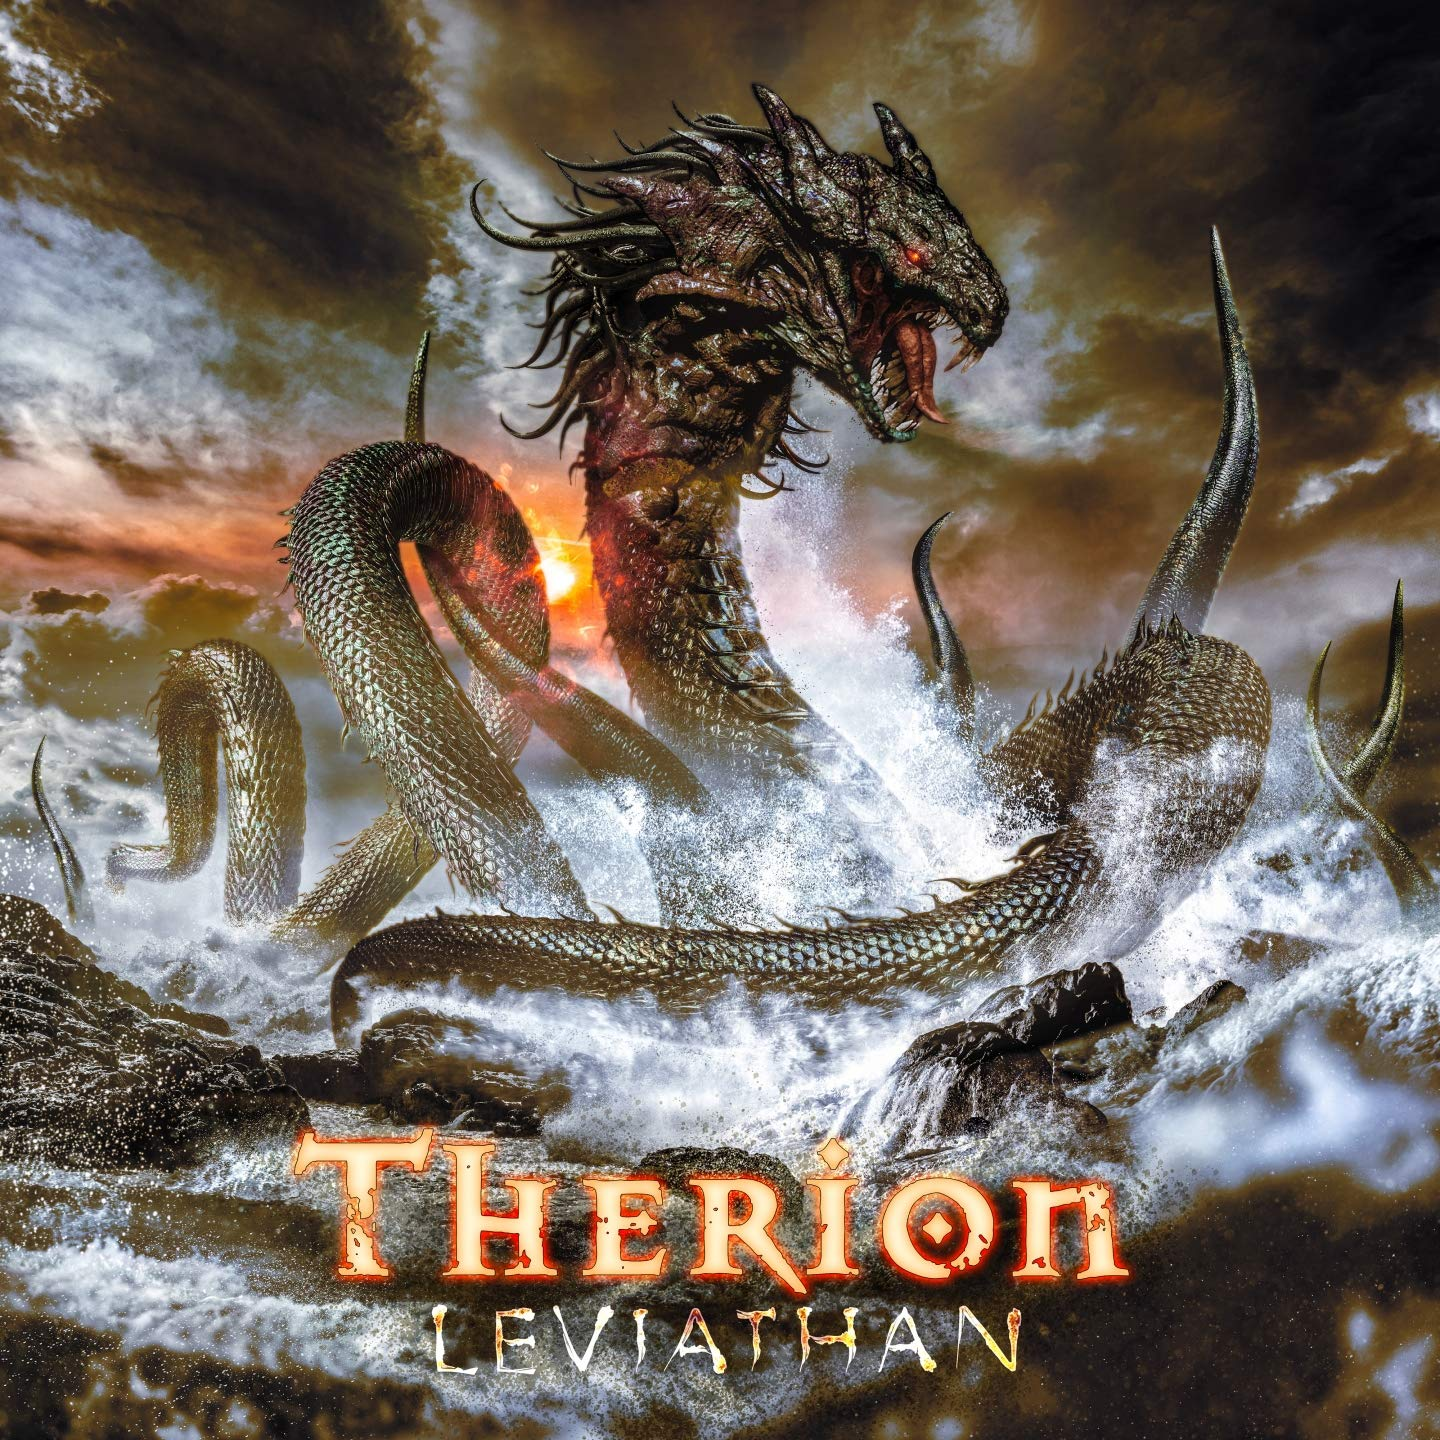 Therion - Leviathan (2021) [FLAC] Download